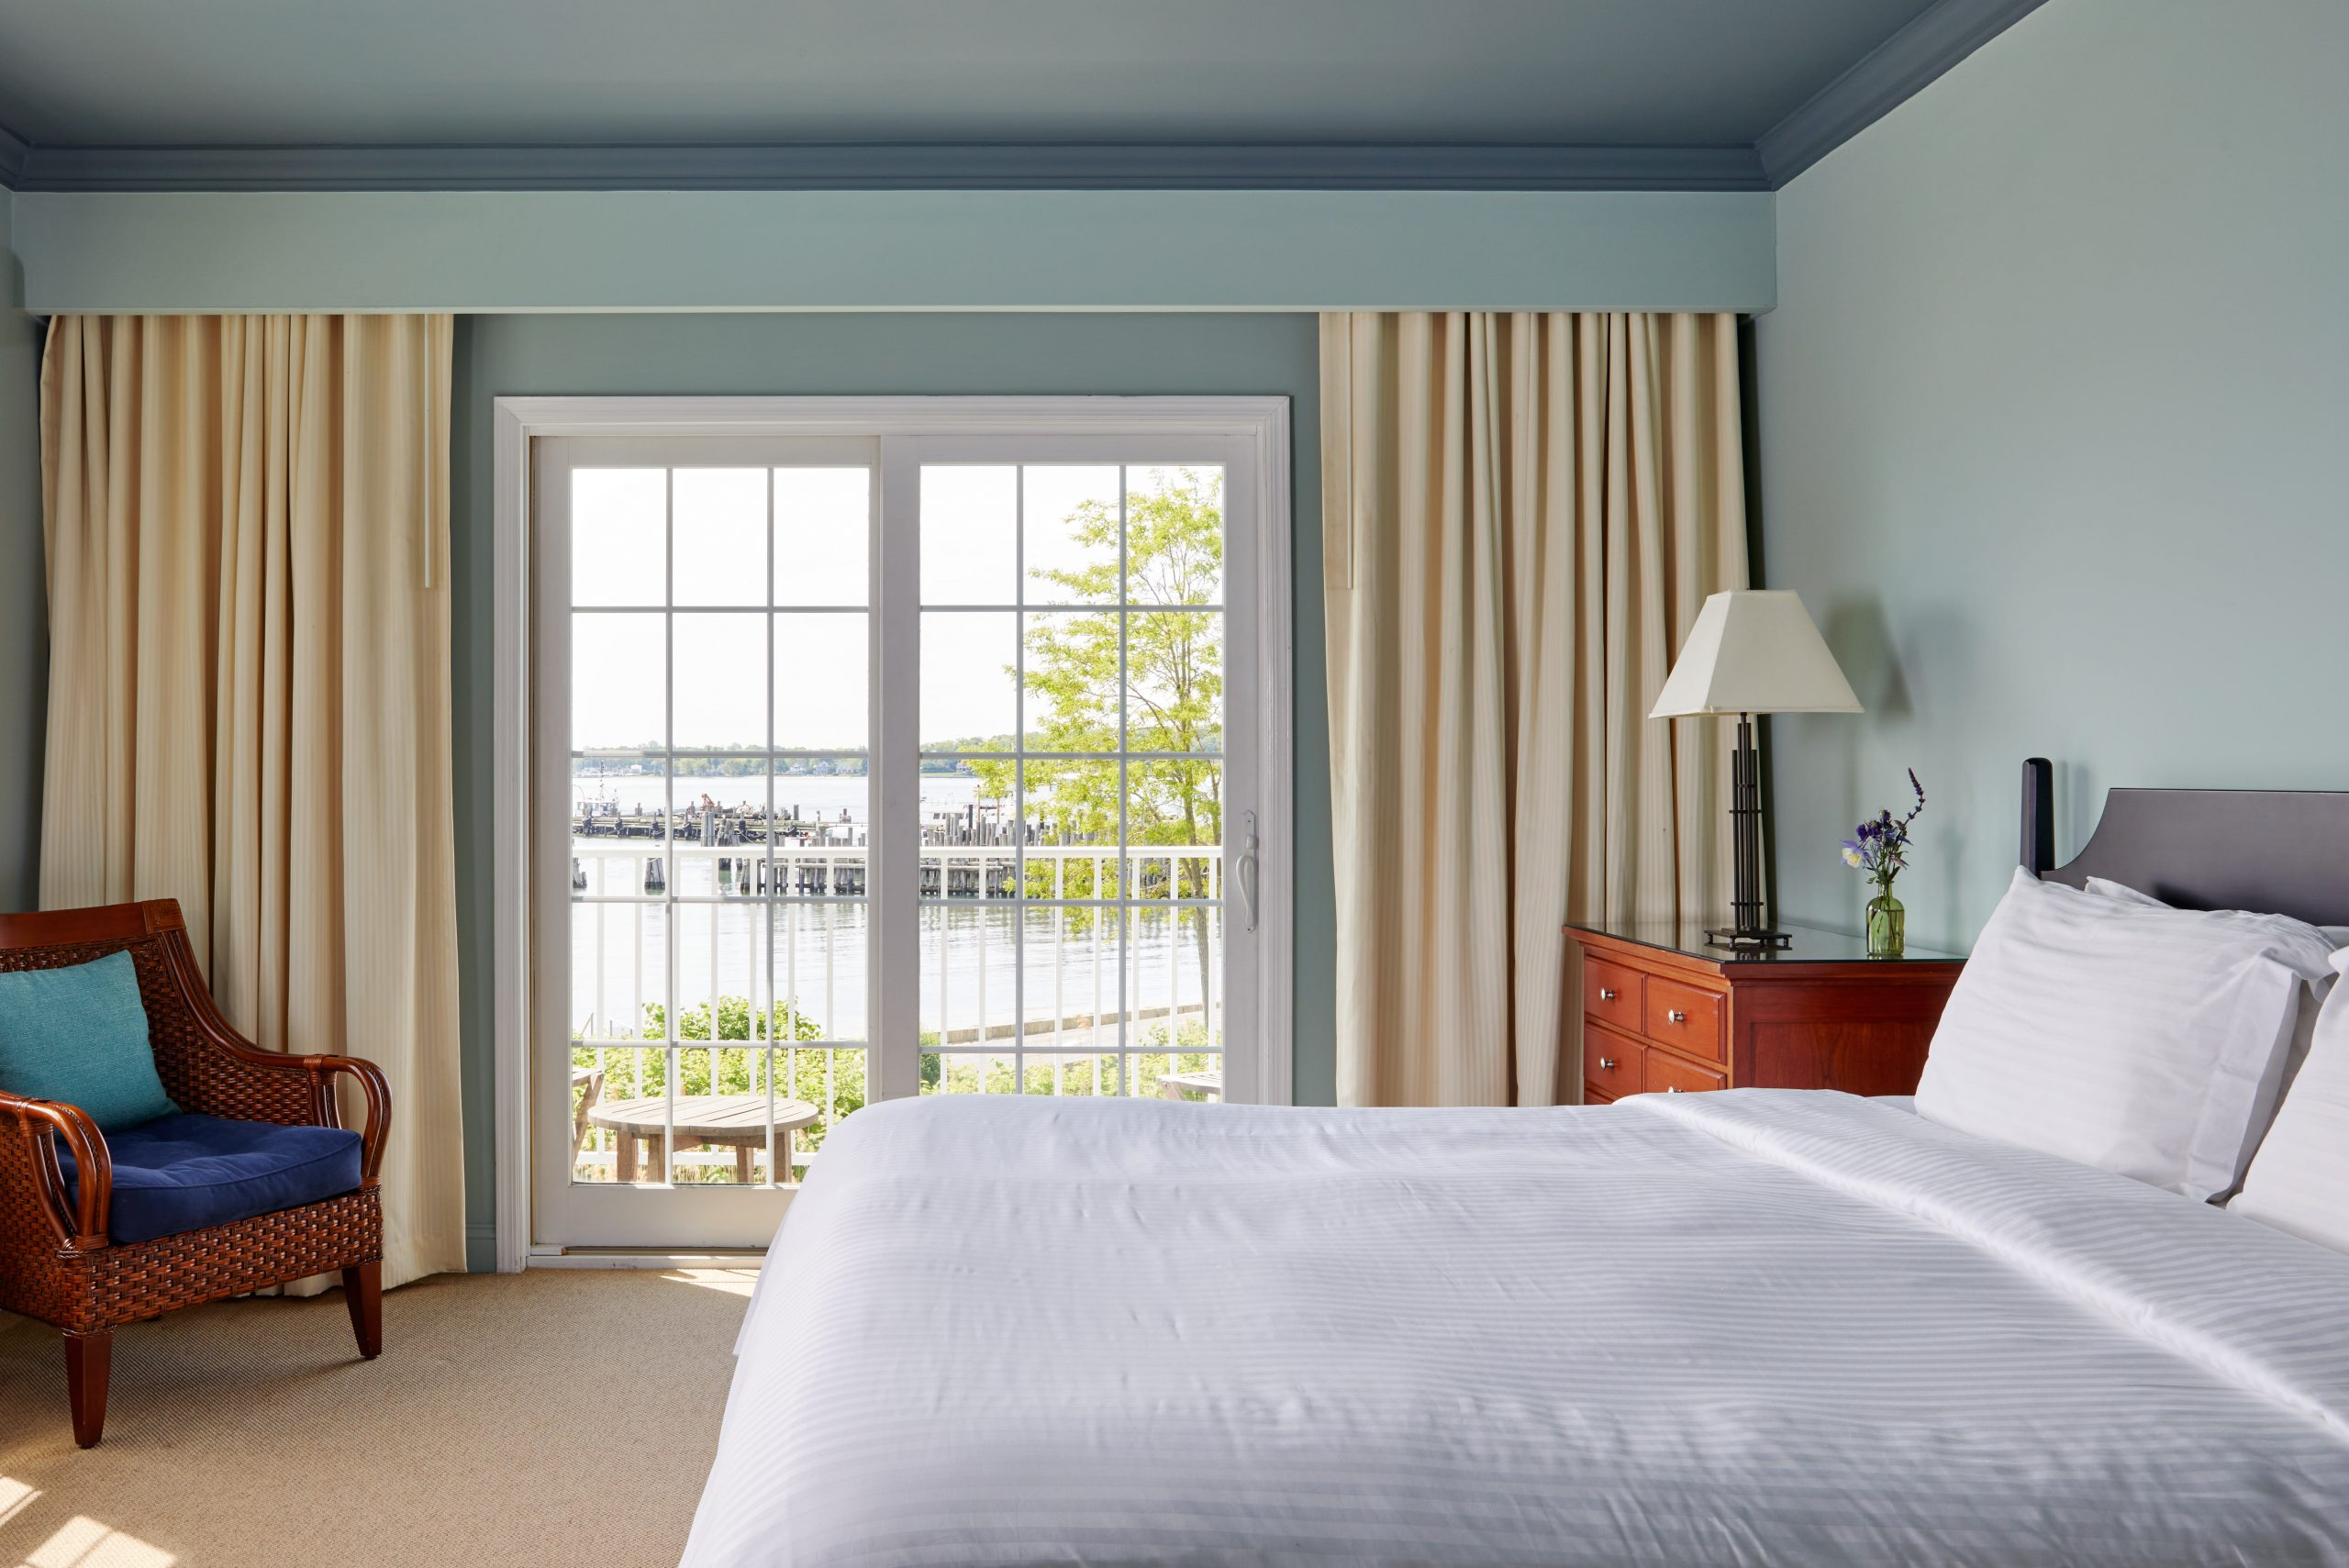 Junior suite with open windows and view of the water